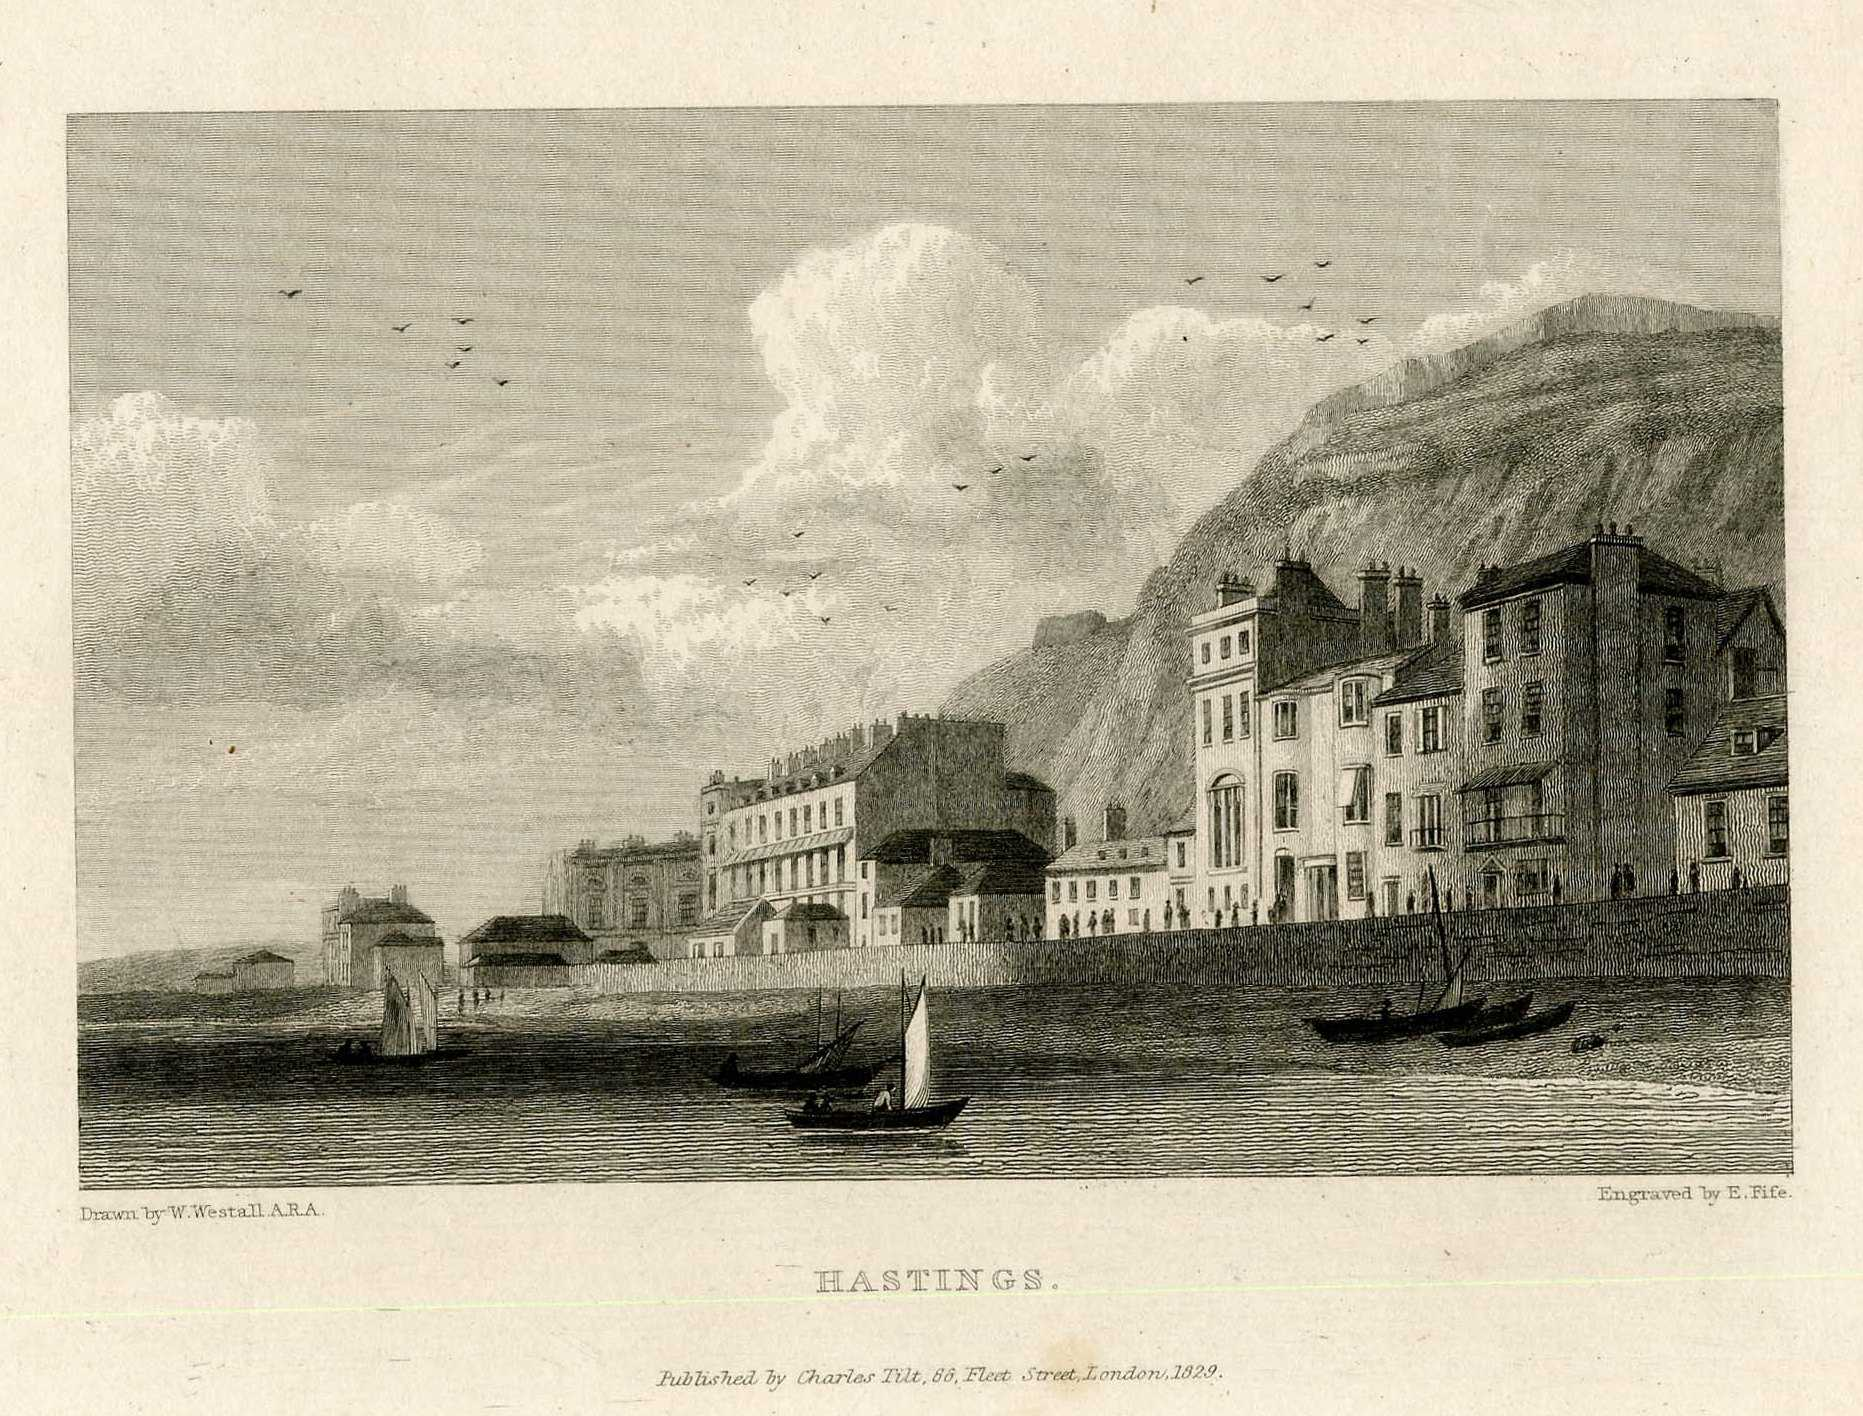 An engraving of Hastings Castle by Page